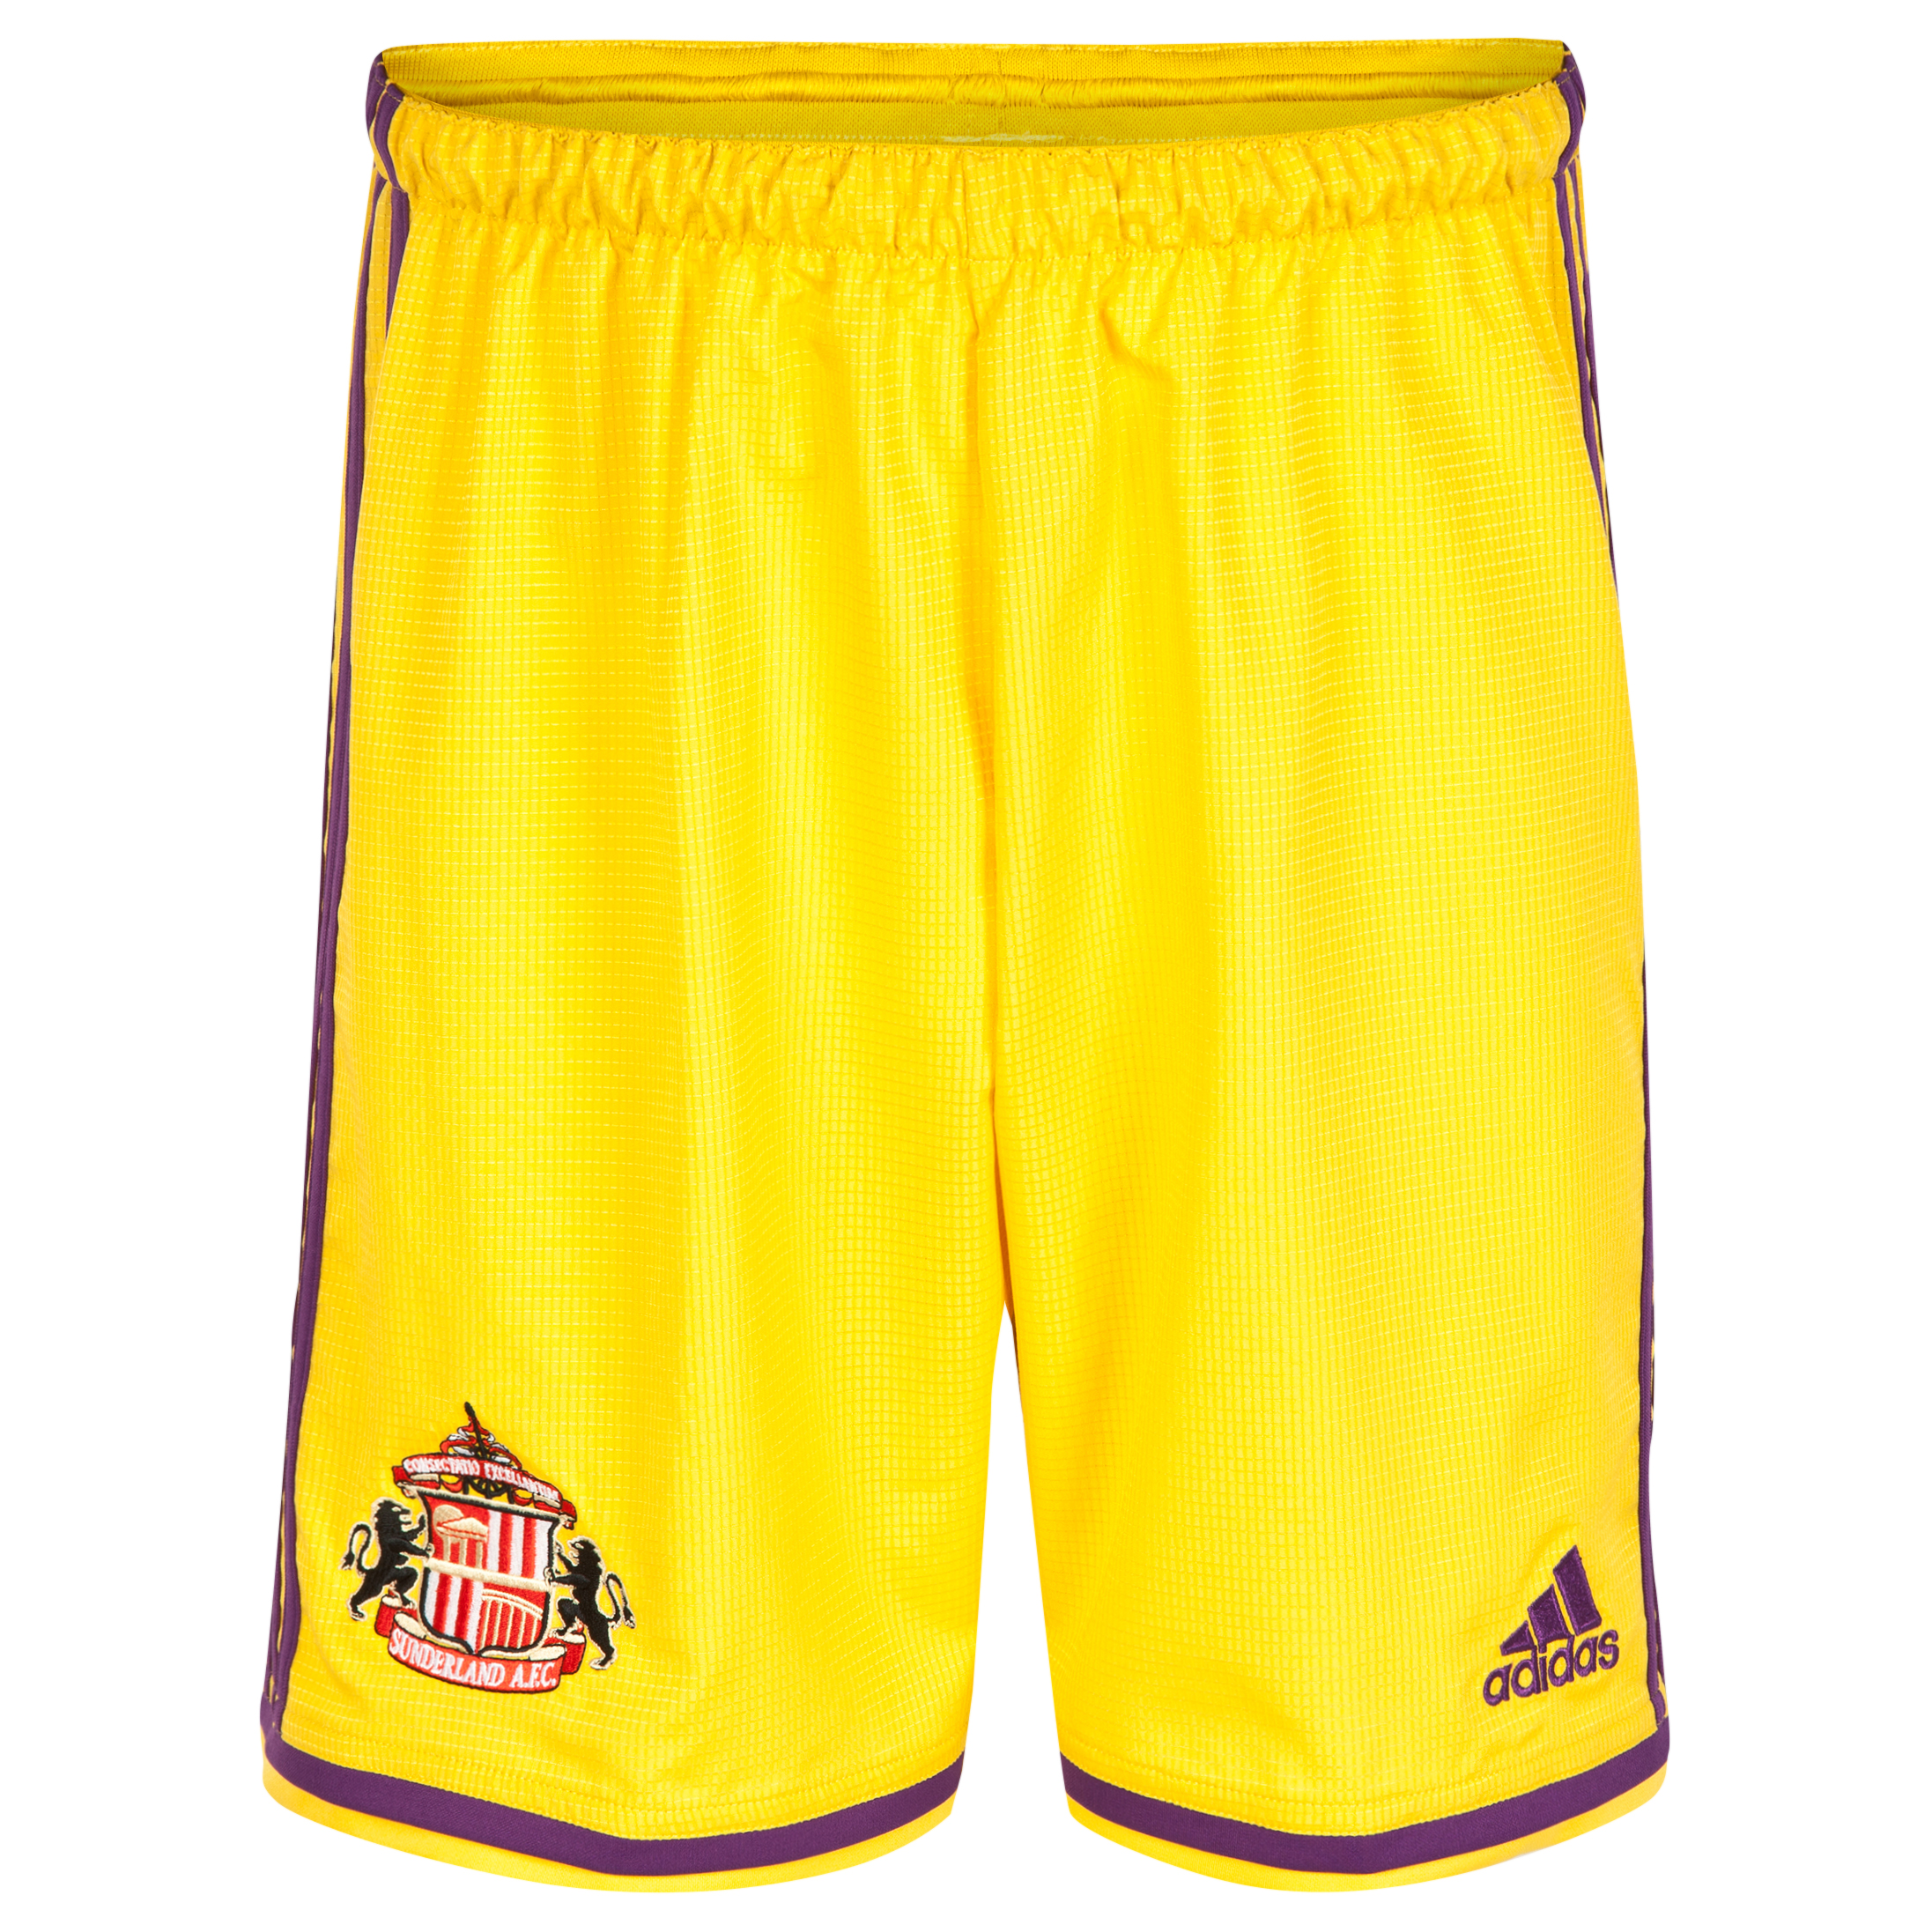 Sunderland Home GK Short 2014/15 Yellow